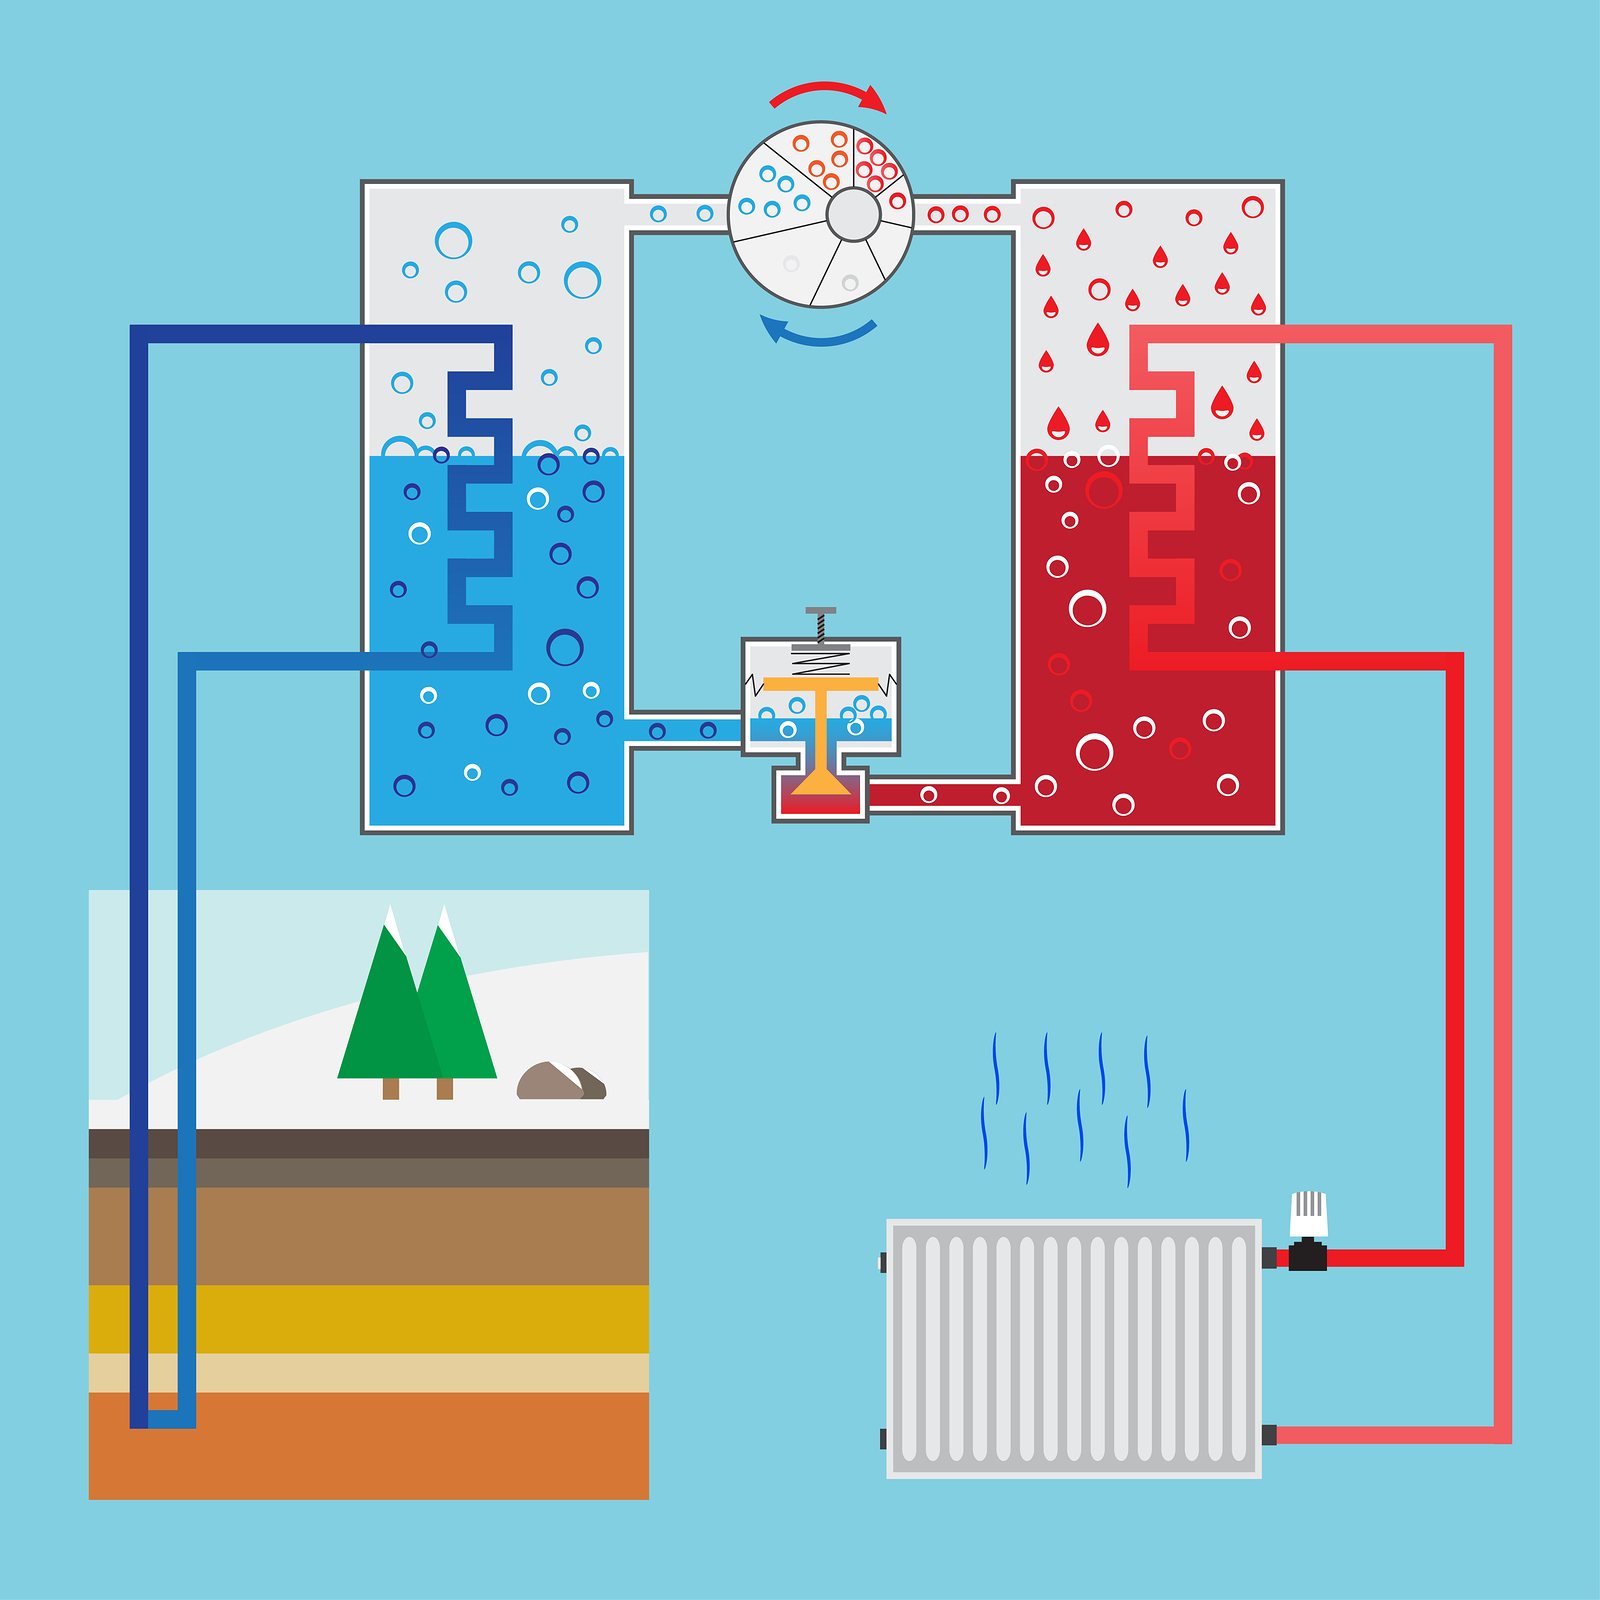 heat pump diagram